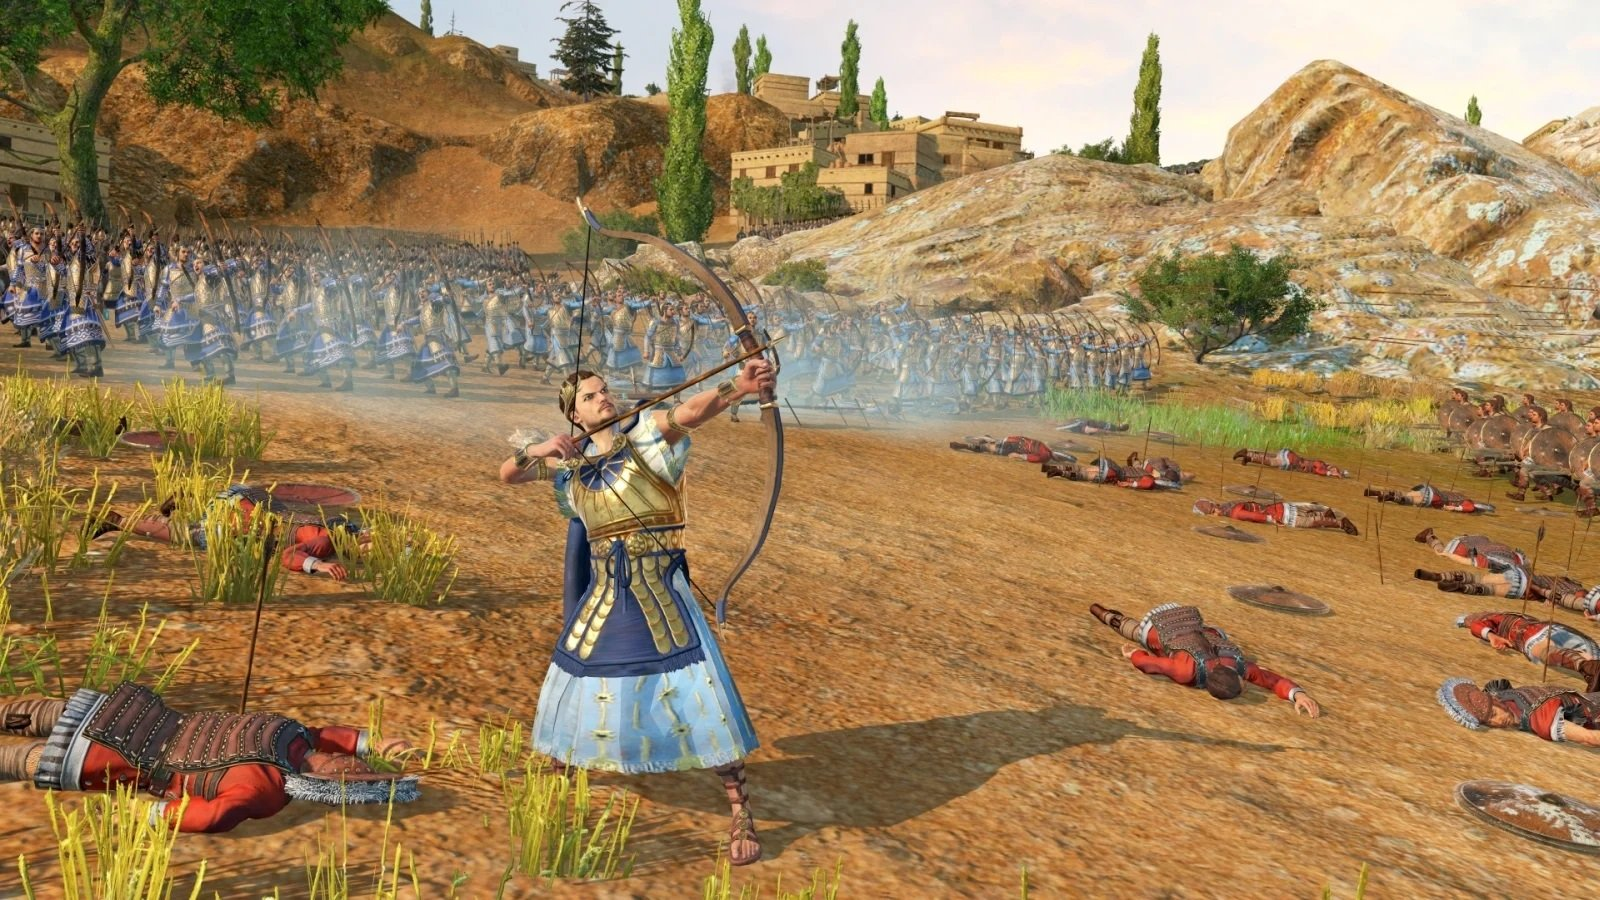 PSA: Today is the only day to get A Total War Saga: Troy for free screenshot